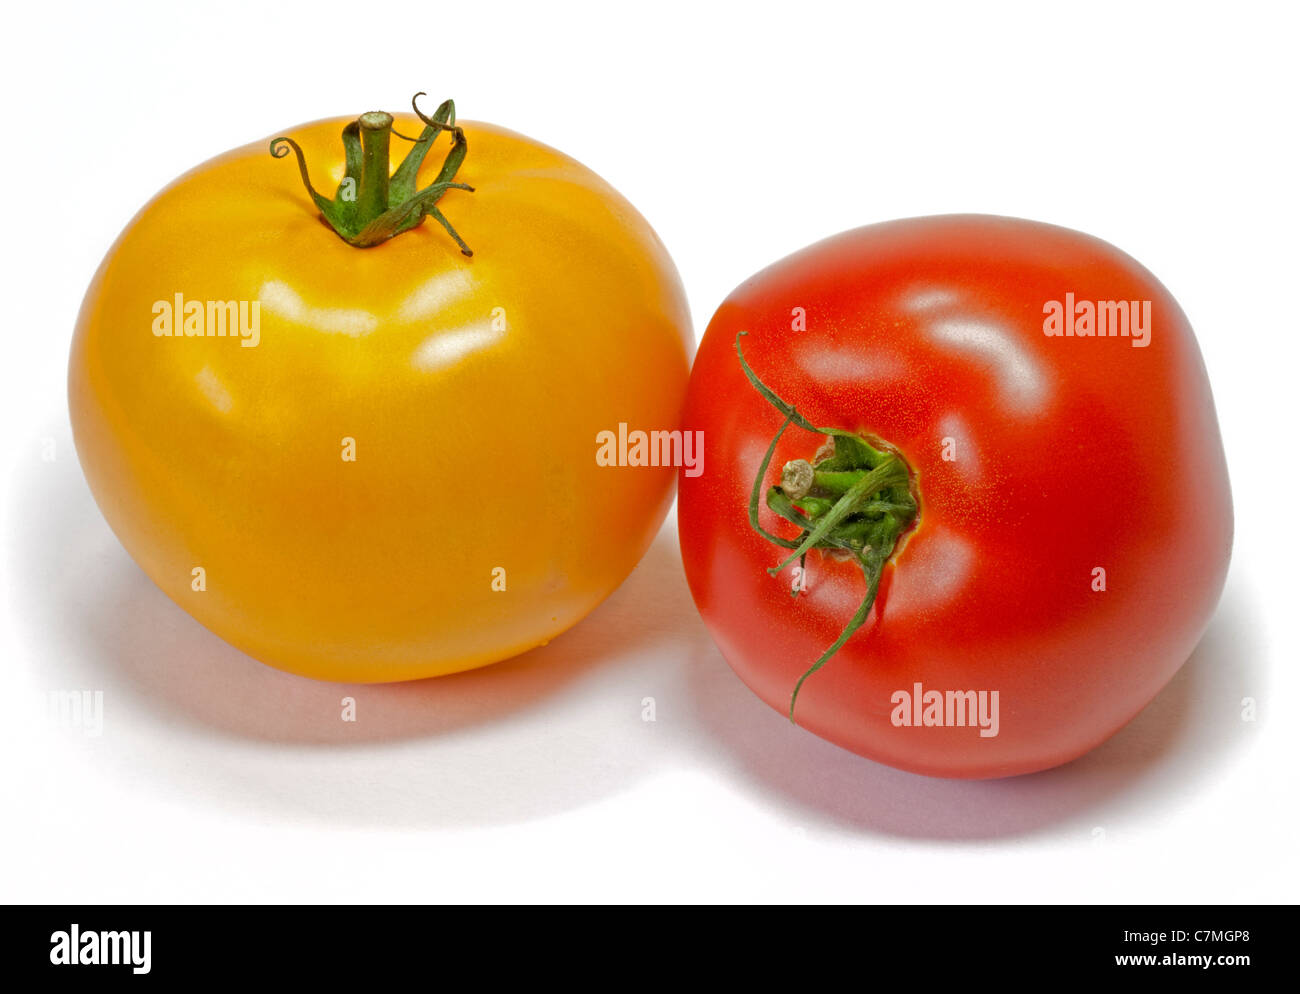 Yellow and Red Beefsteak Tomatoes - Stock Image